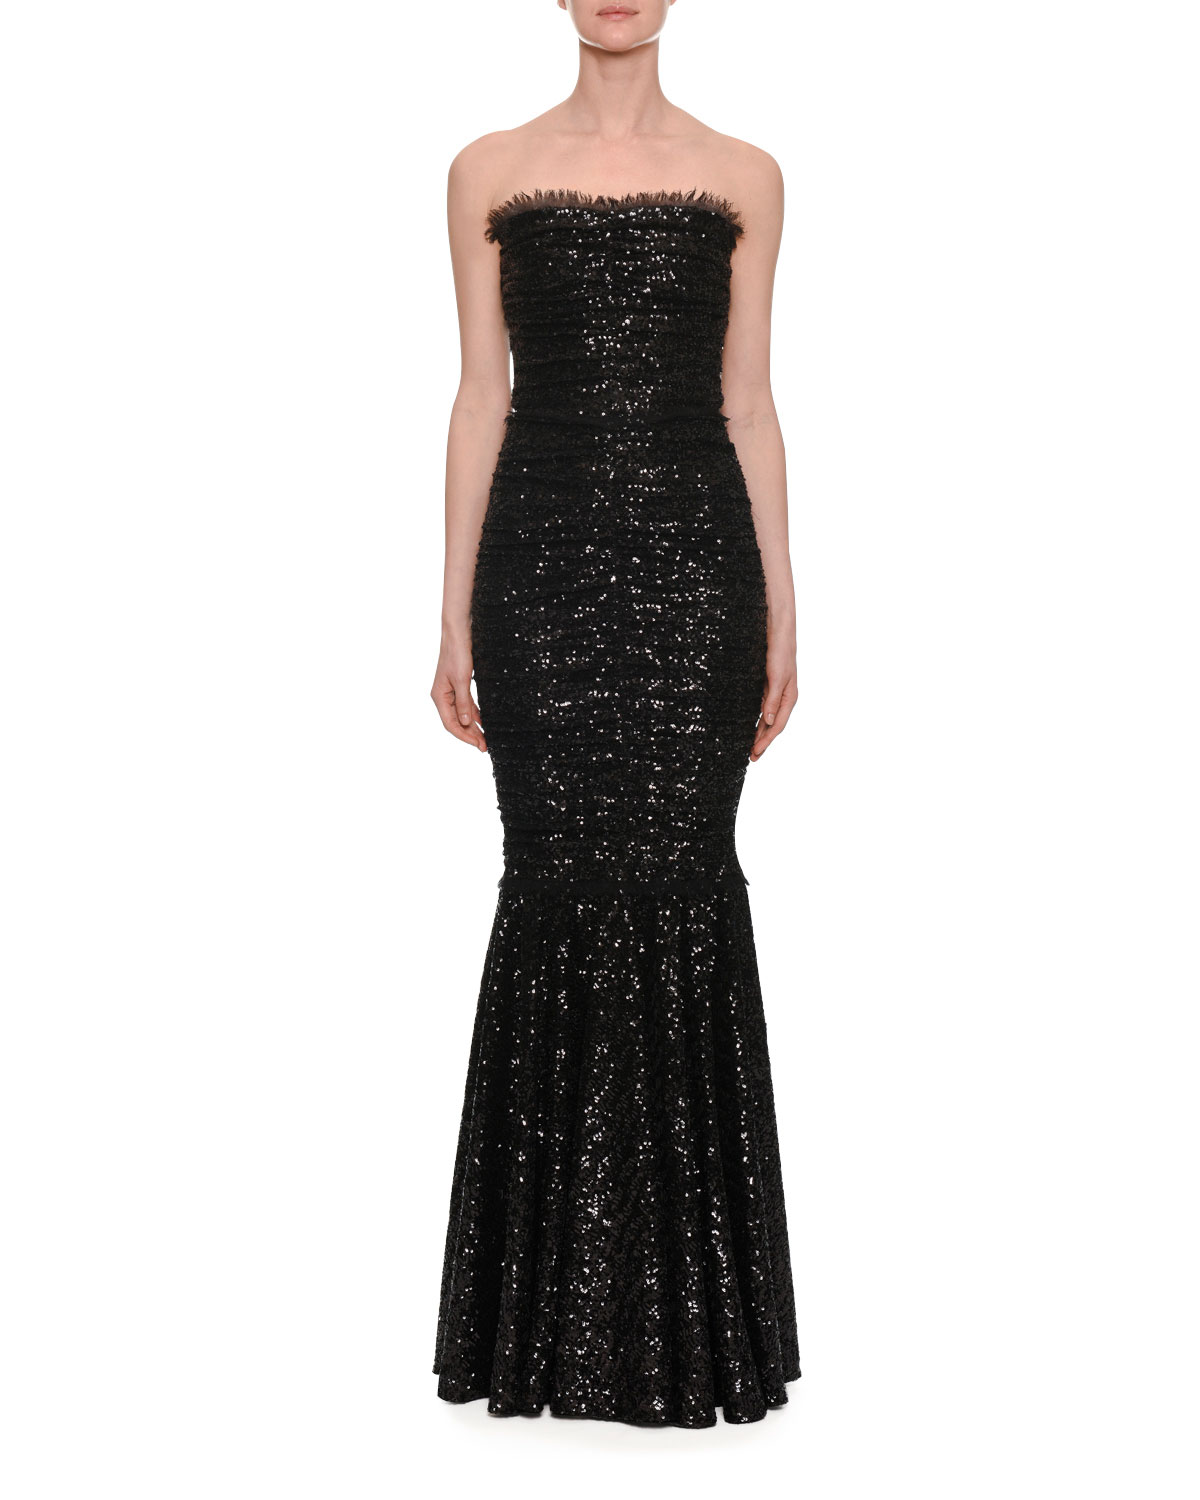 8268fc185273 Dolce   Gabbana Strapless Stretch Sequin Evening Gown